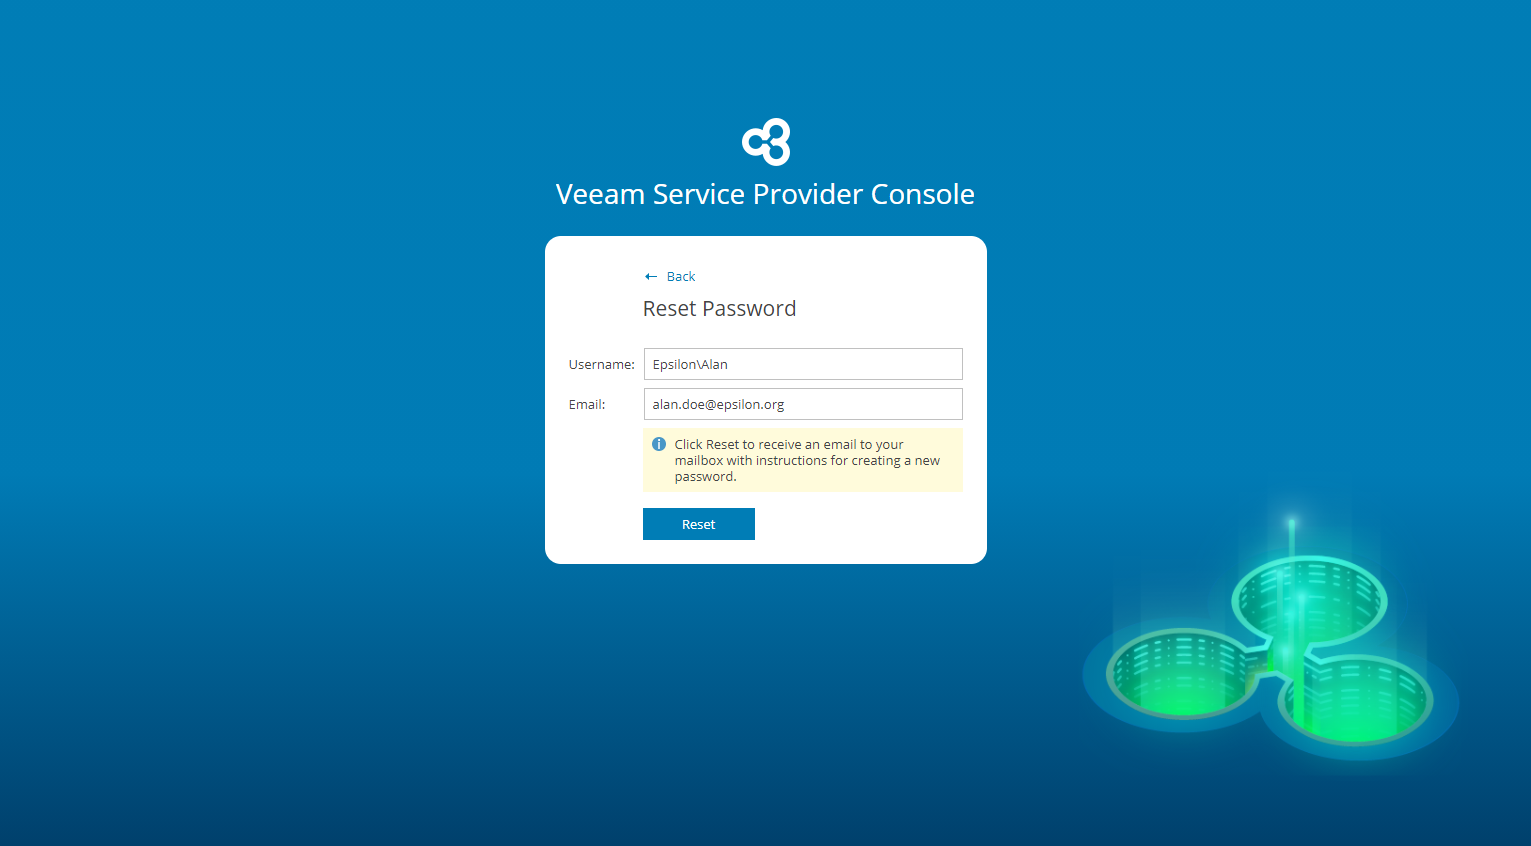 Resetting Password - Veeam Availability Console Guide for End Users